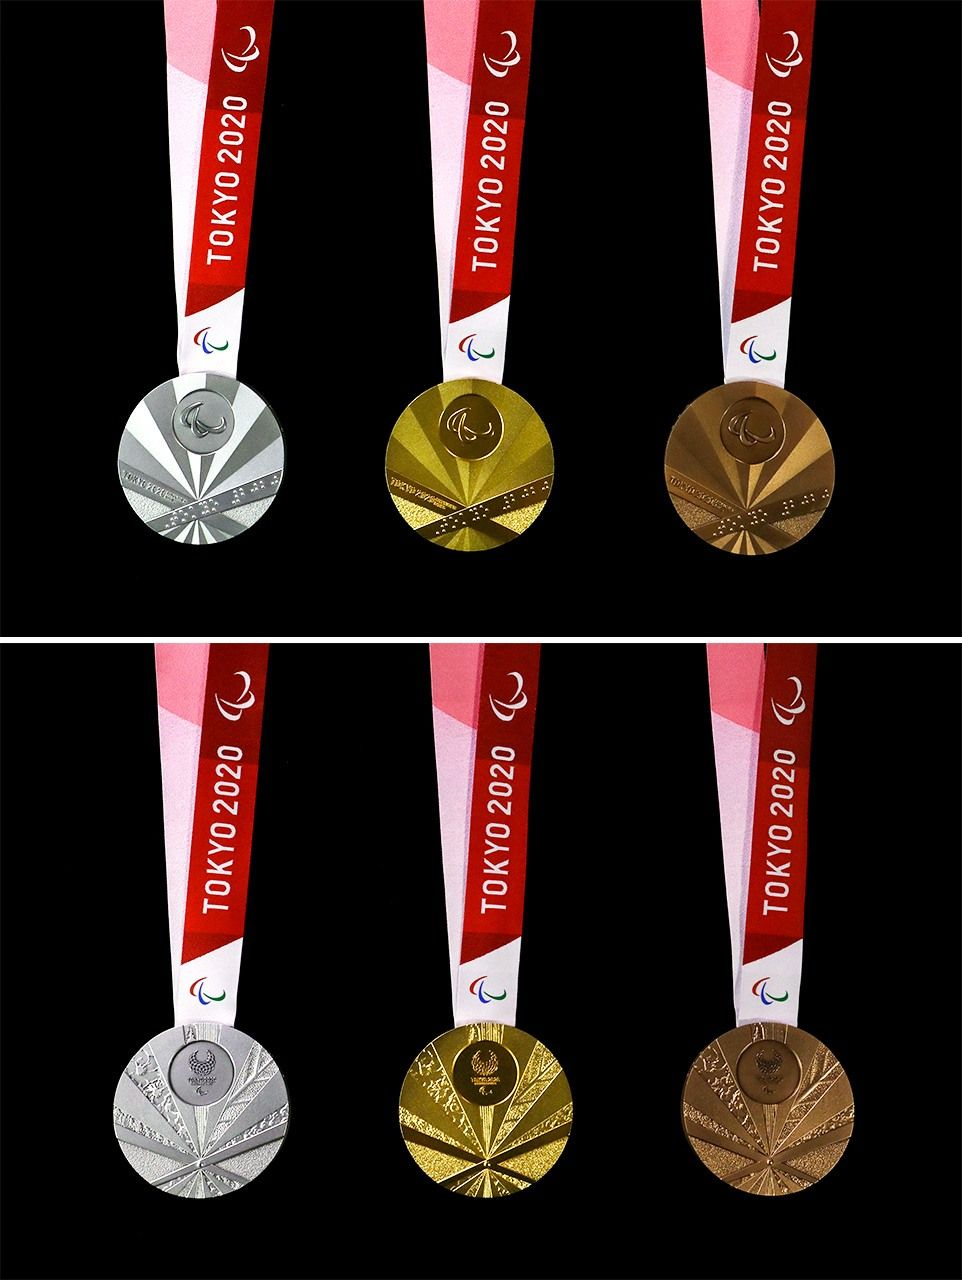 The obverse (top) and reverse of the 2020 Paralympic medals. (© Jiji)